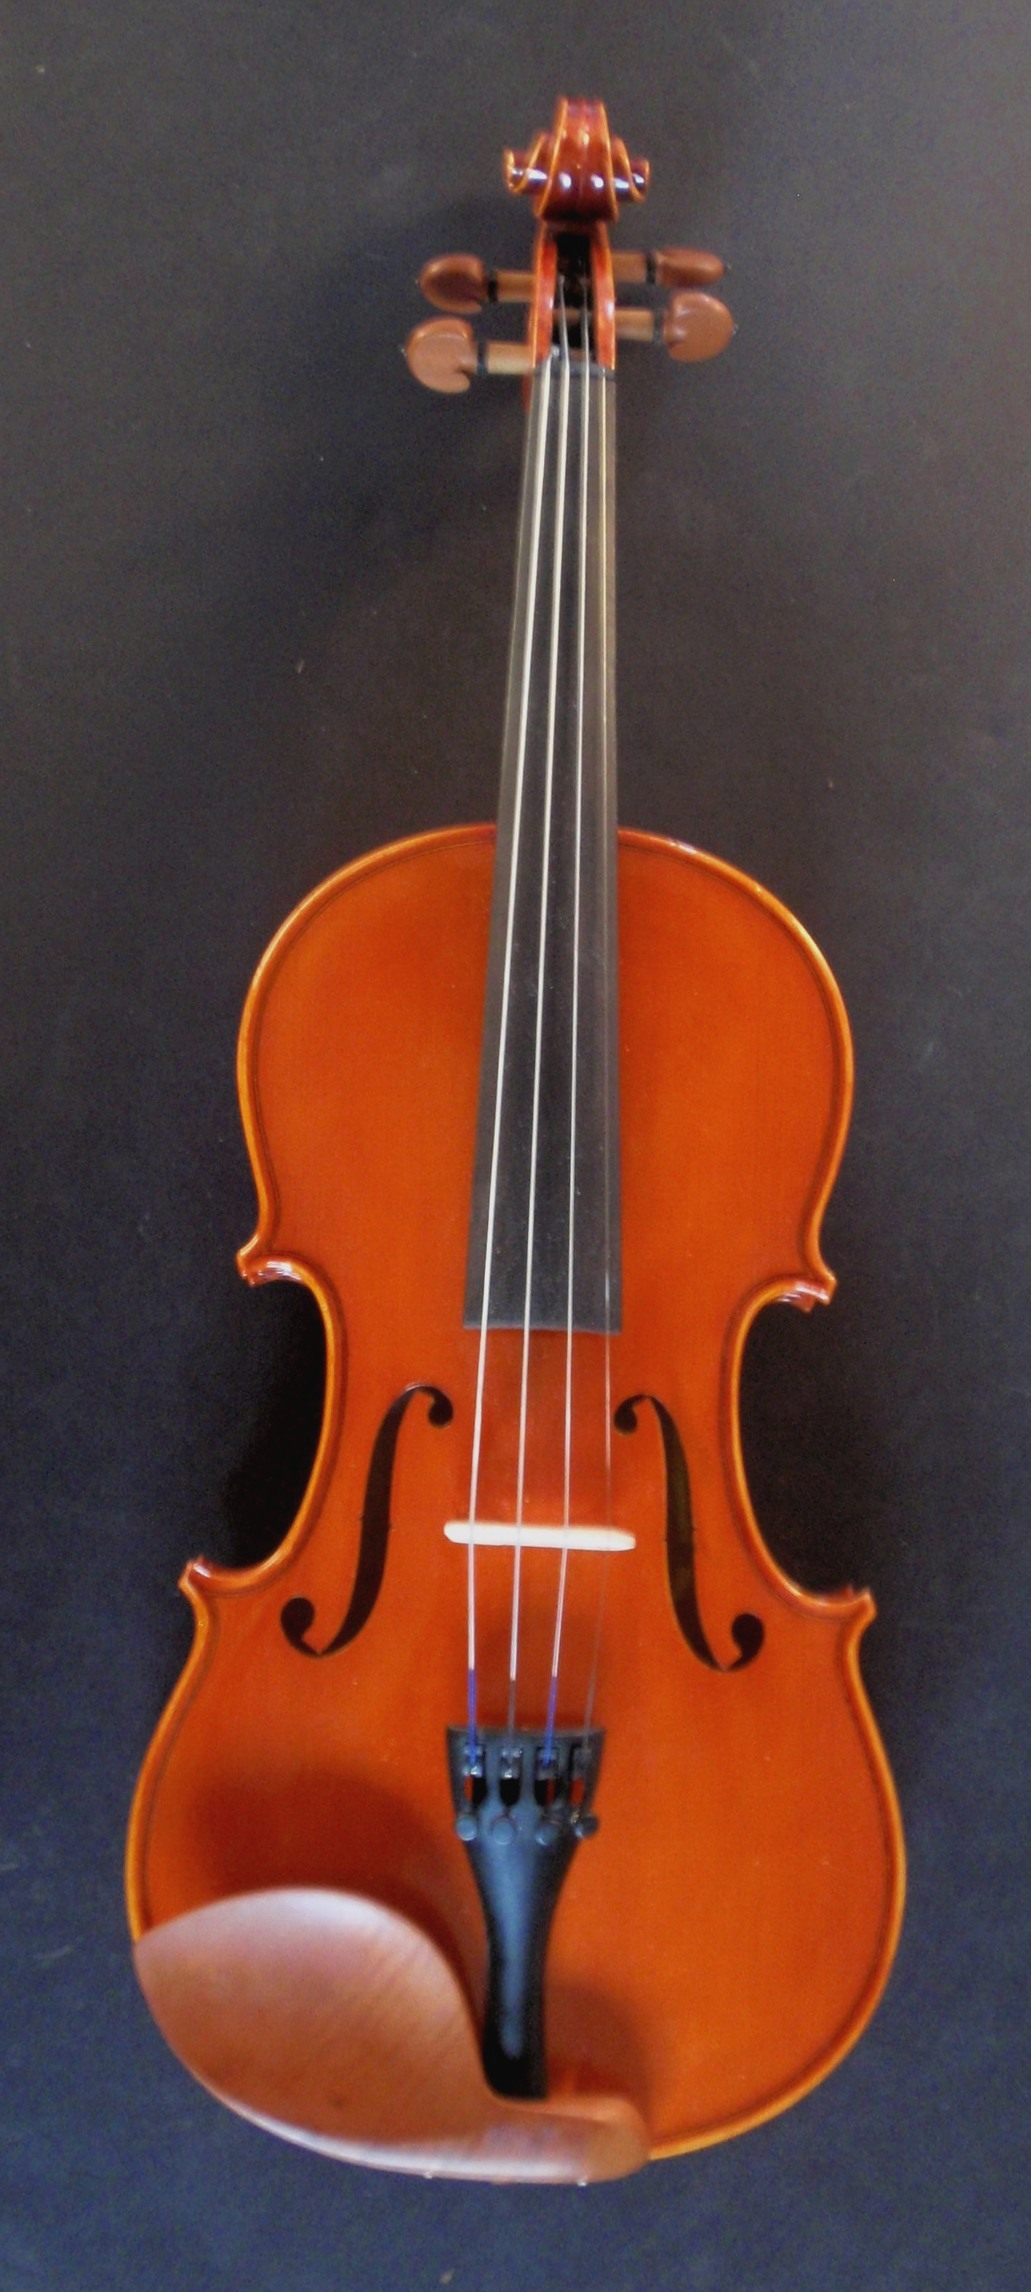 Vivo Prelude Violin Frontview